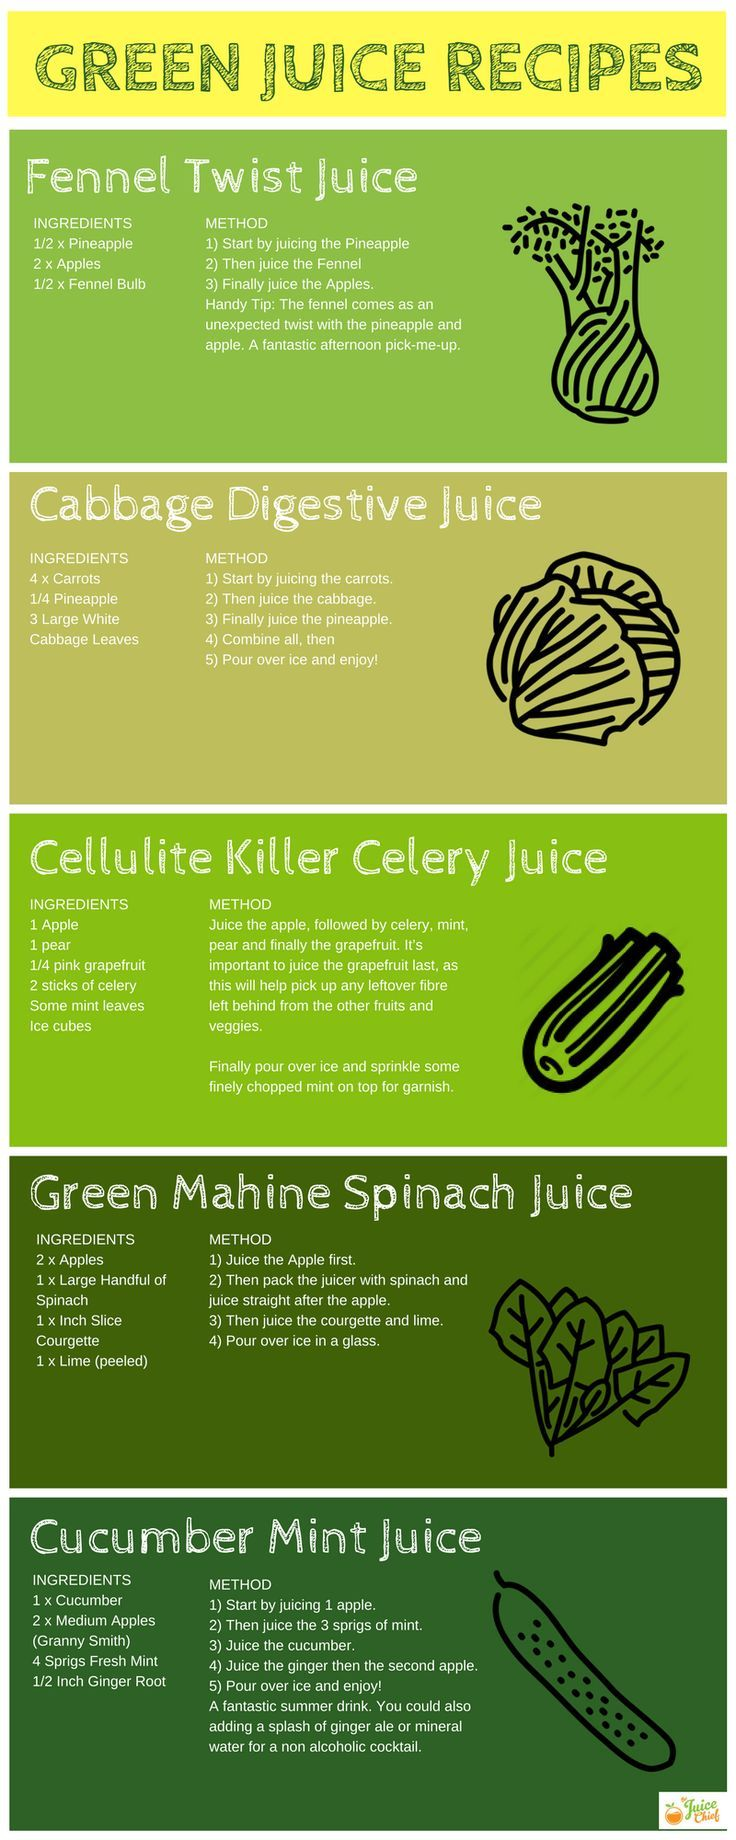 Green Juice Recipes for health, vitality, weight loss and more. Learn everything there is to know about Green Juices as well as get access to more recipes today via The Juice Chief.